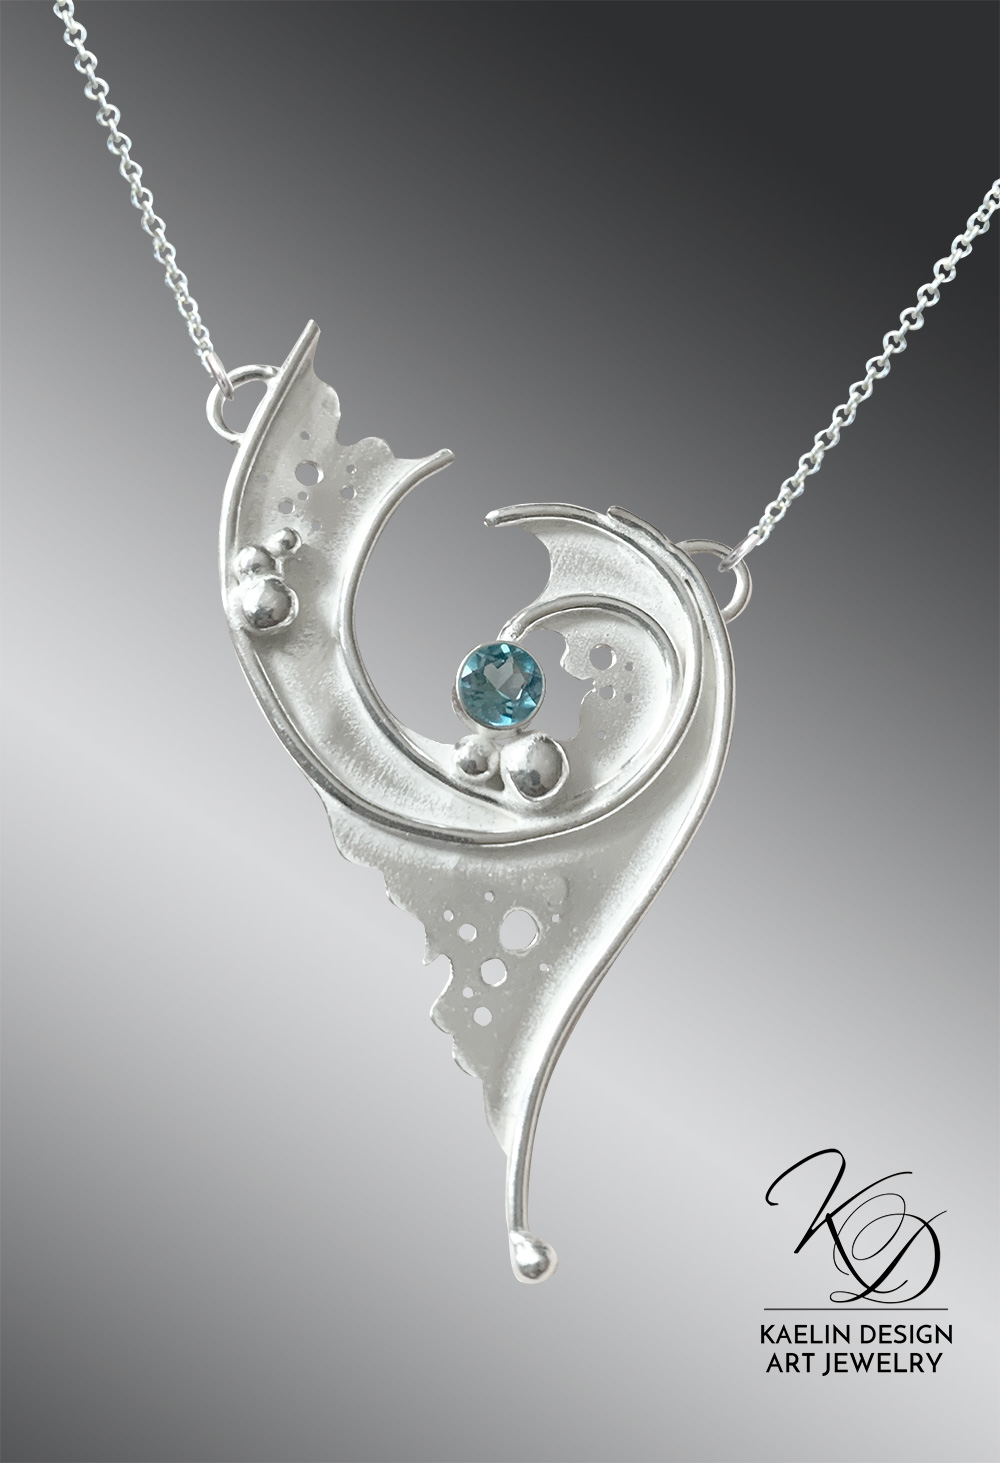 Lagoon Blue Topaz Sterling Silver Art Jewelry Pendant by Kaelin Design